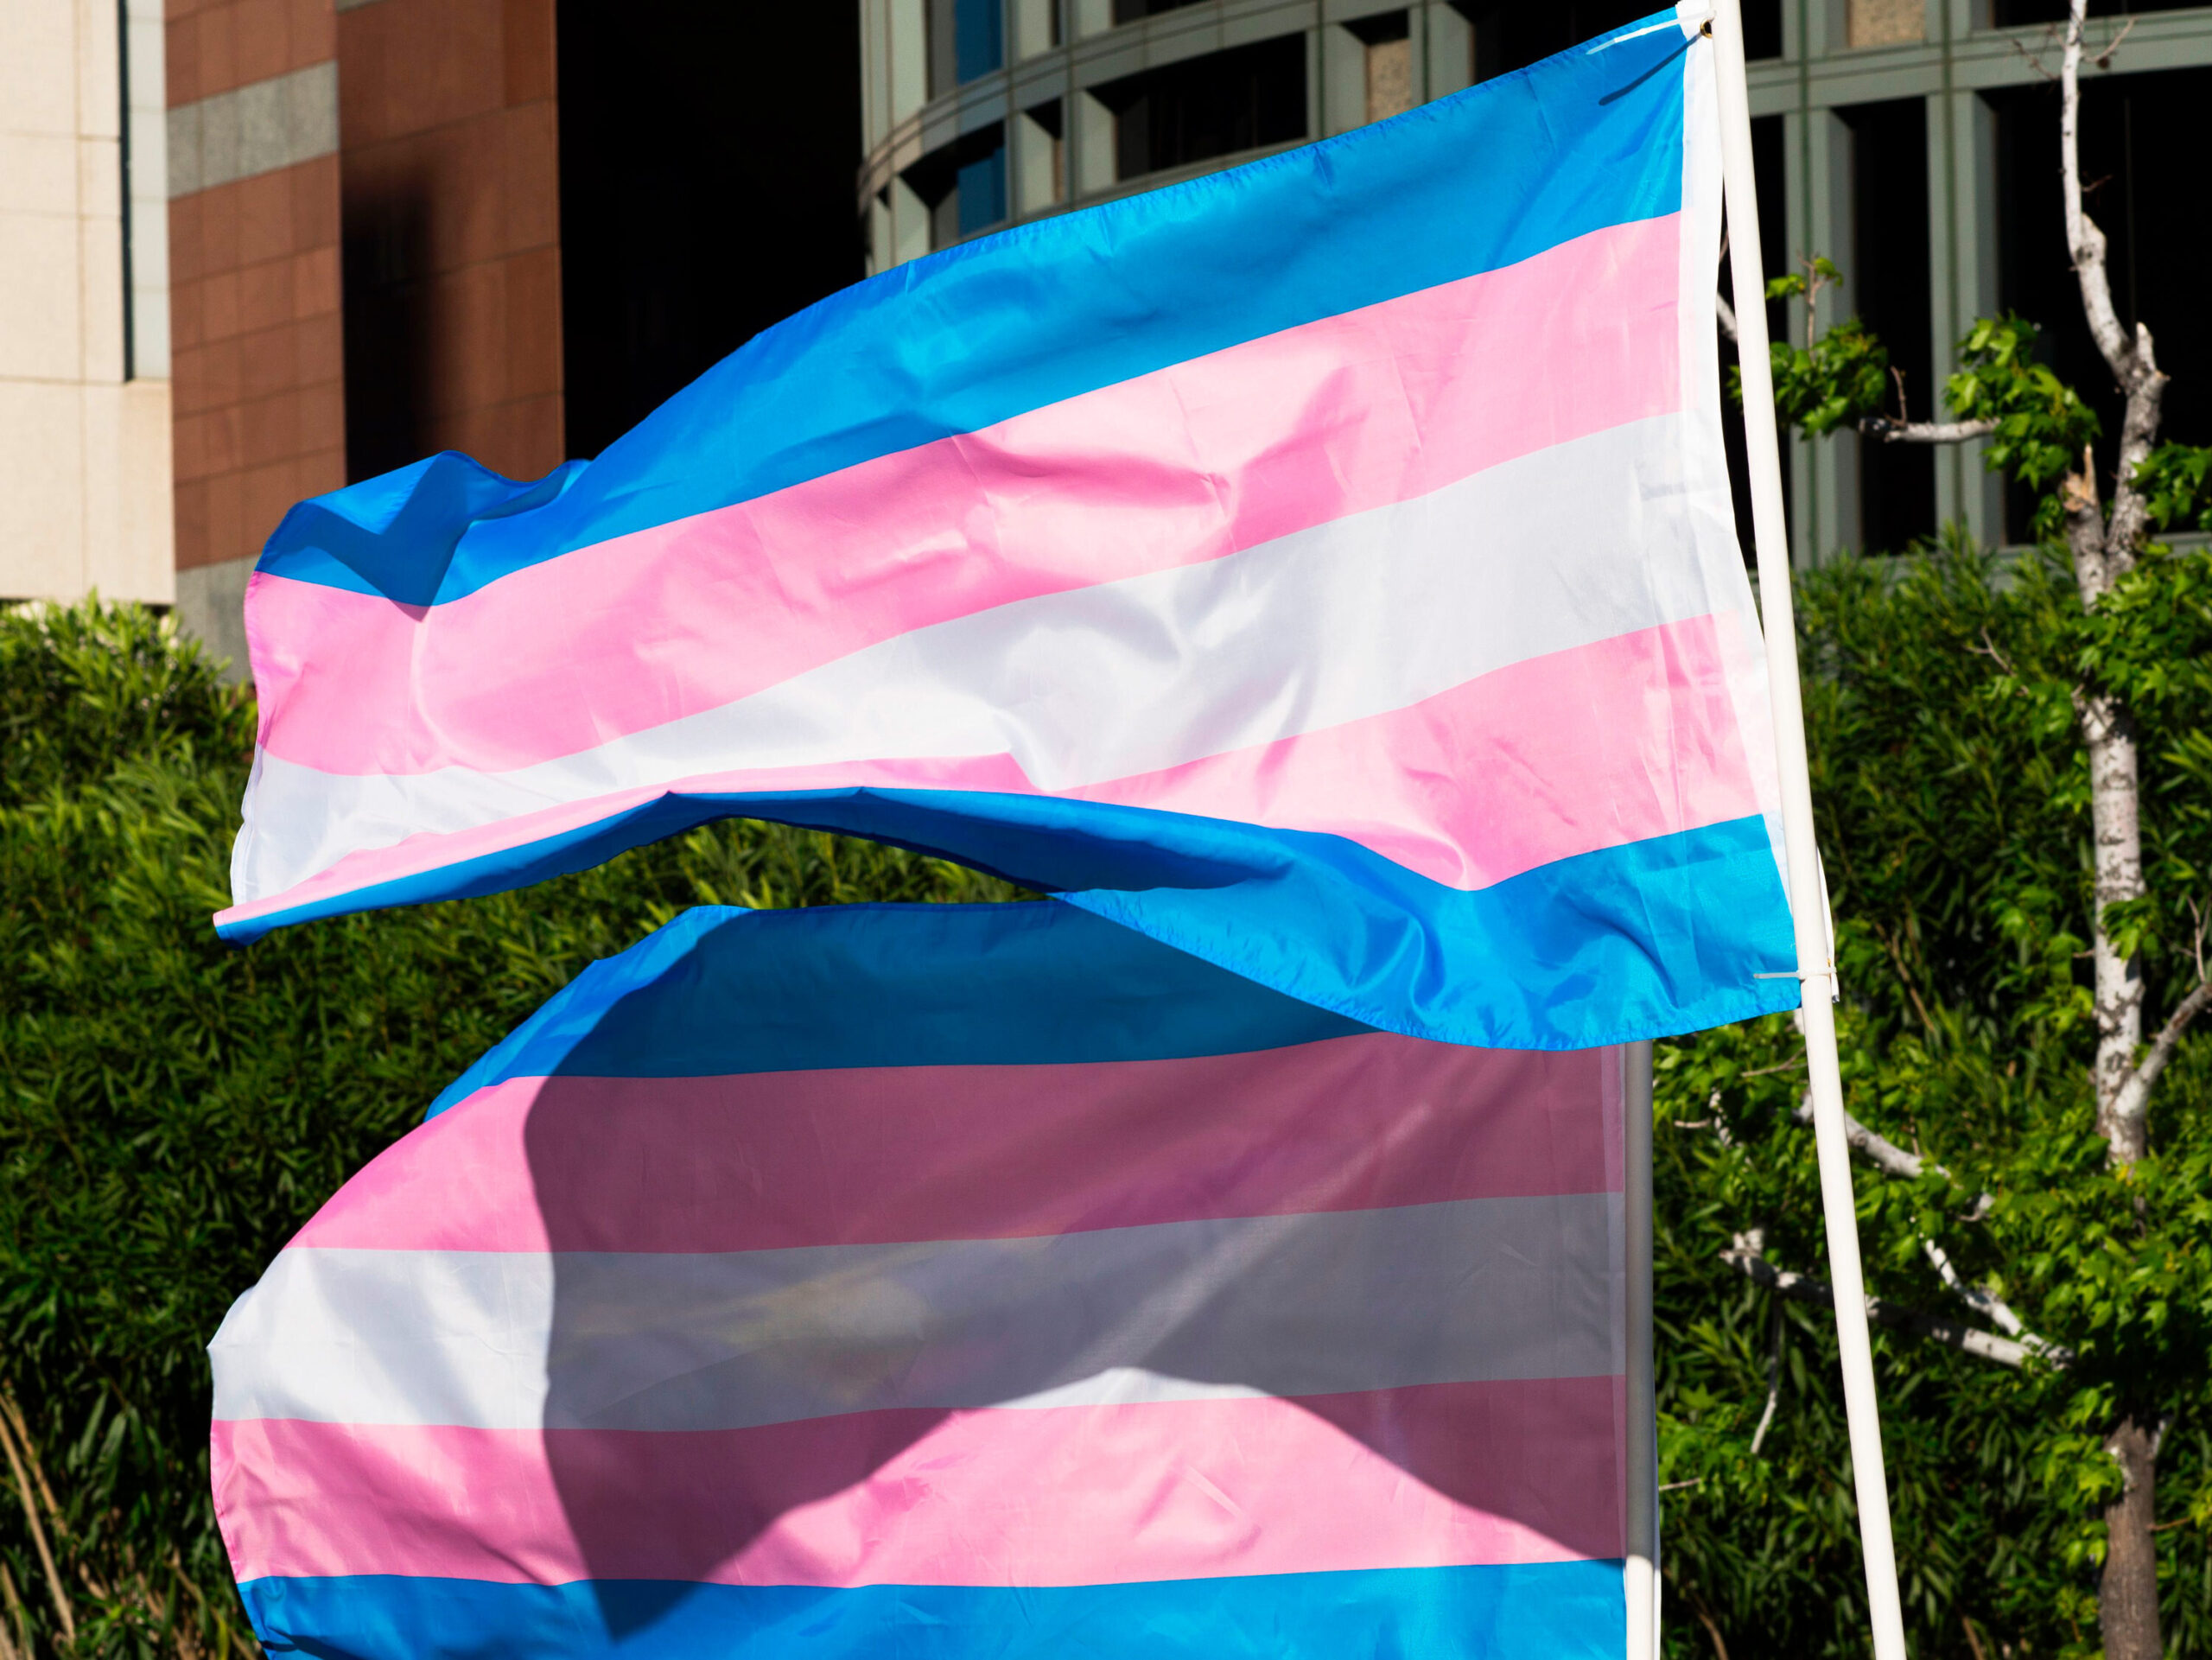 <i>ROBYN BECK/AFP/Getty Images</i><br/>A federal judge on July 21 temporarily blocked Arkansas' ban on gender-affirming treatment for transgender youth from going into effect later this month.